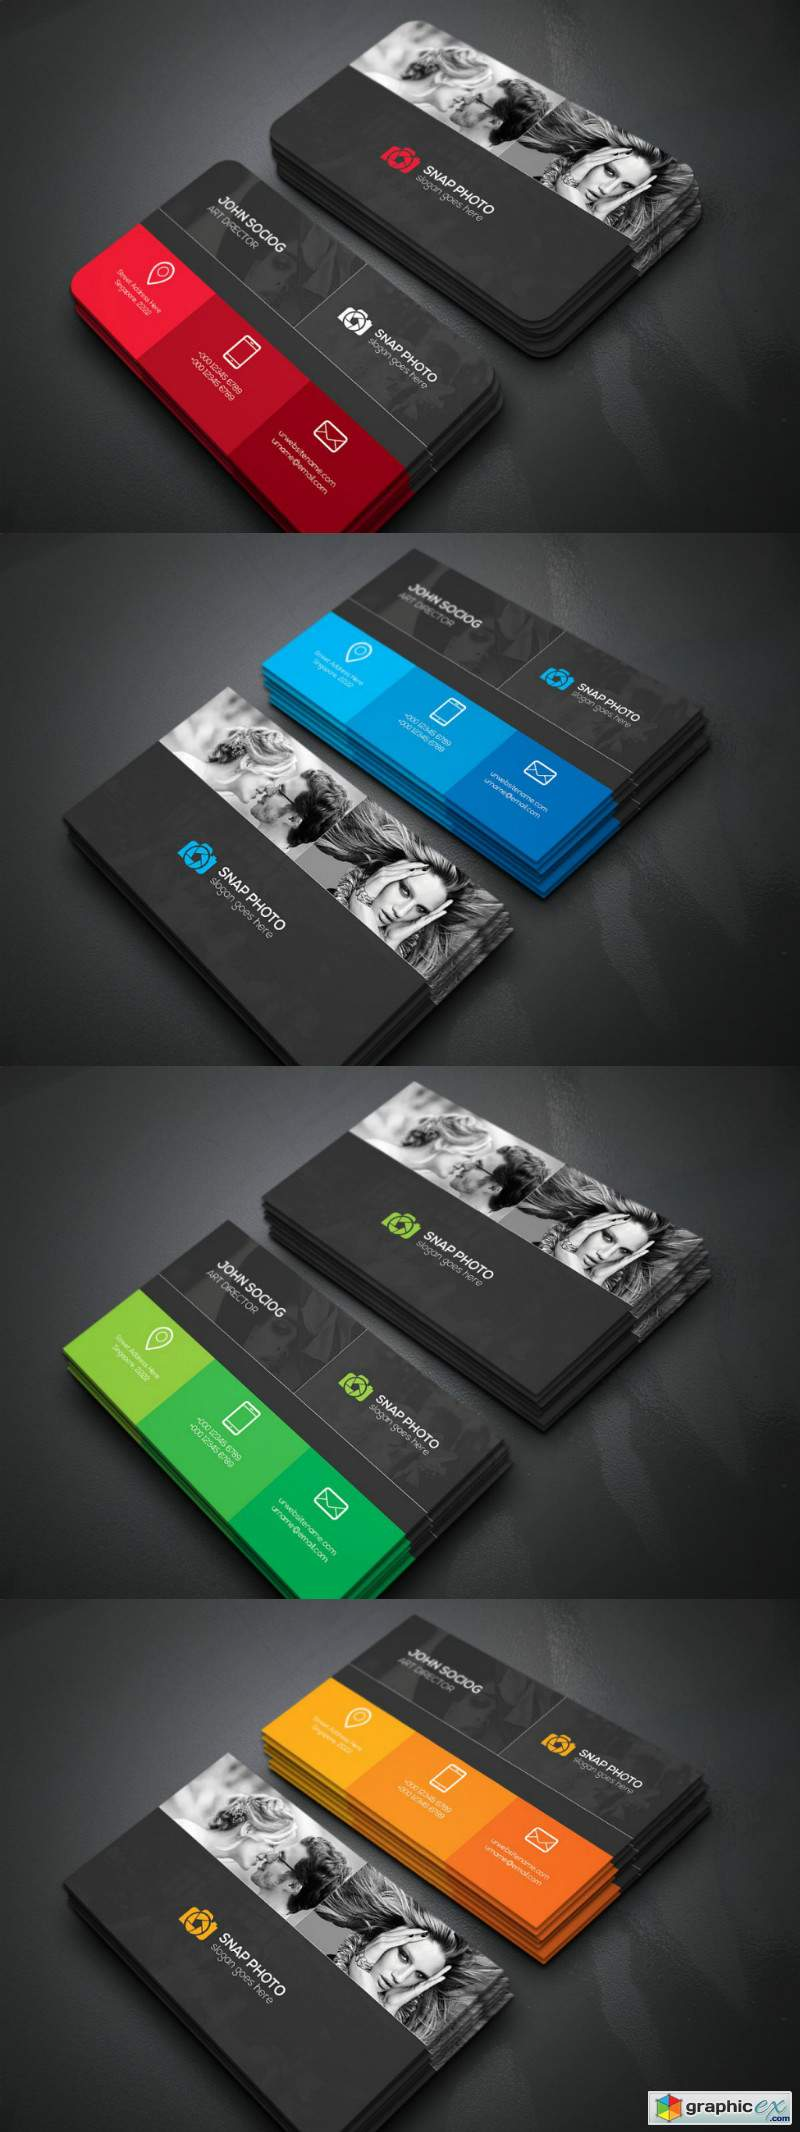 Photography Business Cards 3239919